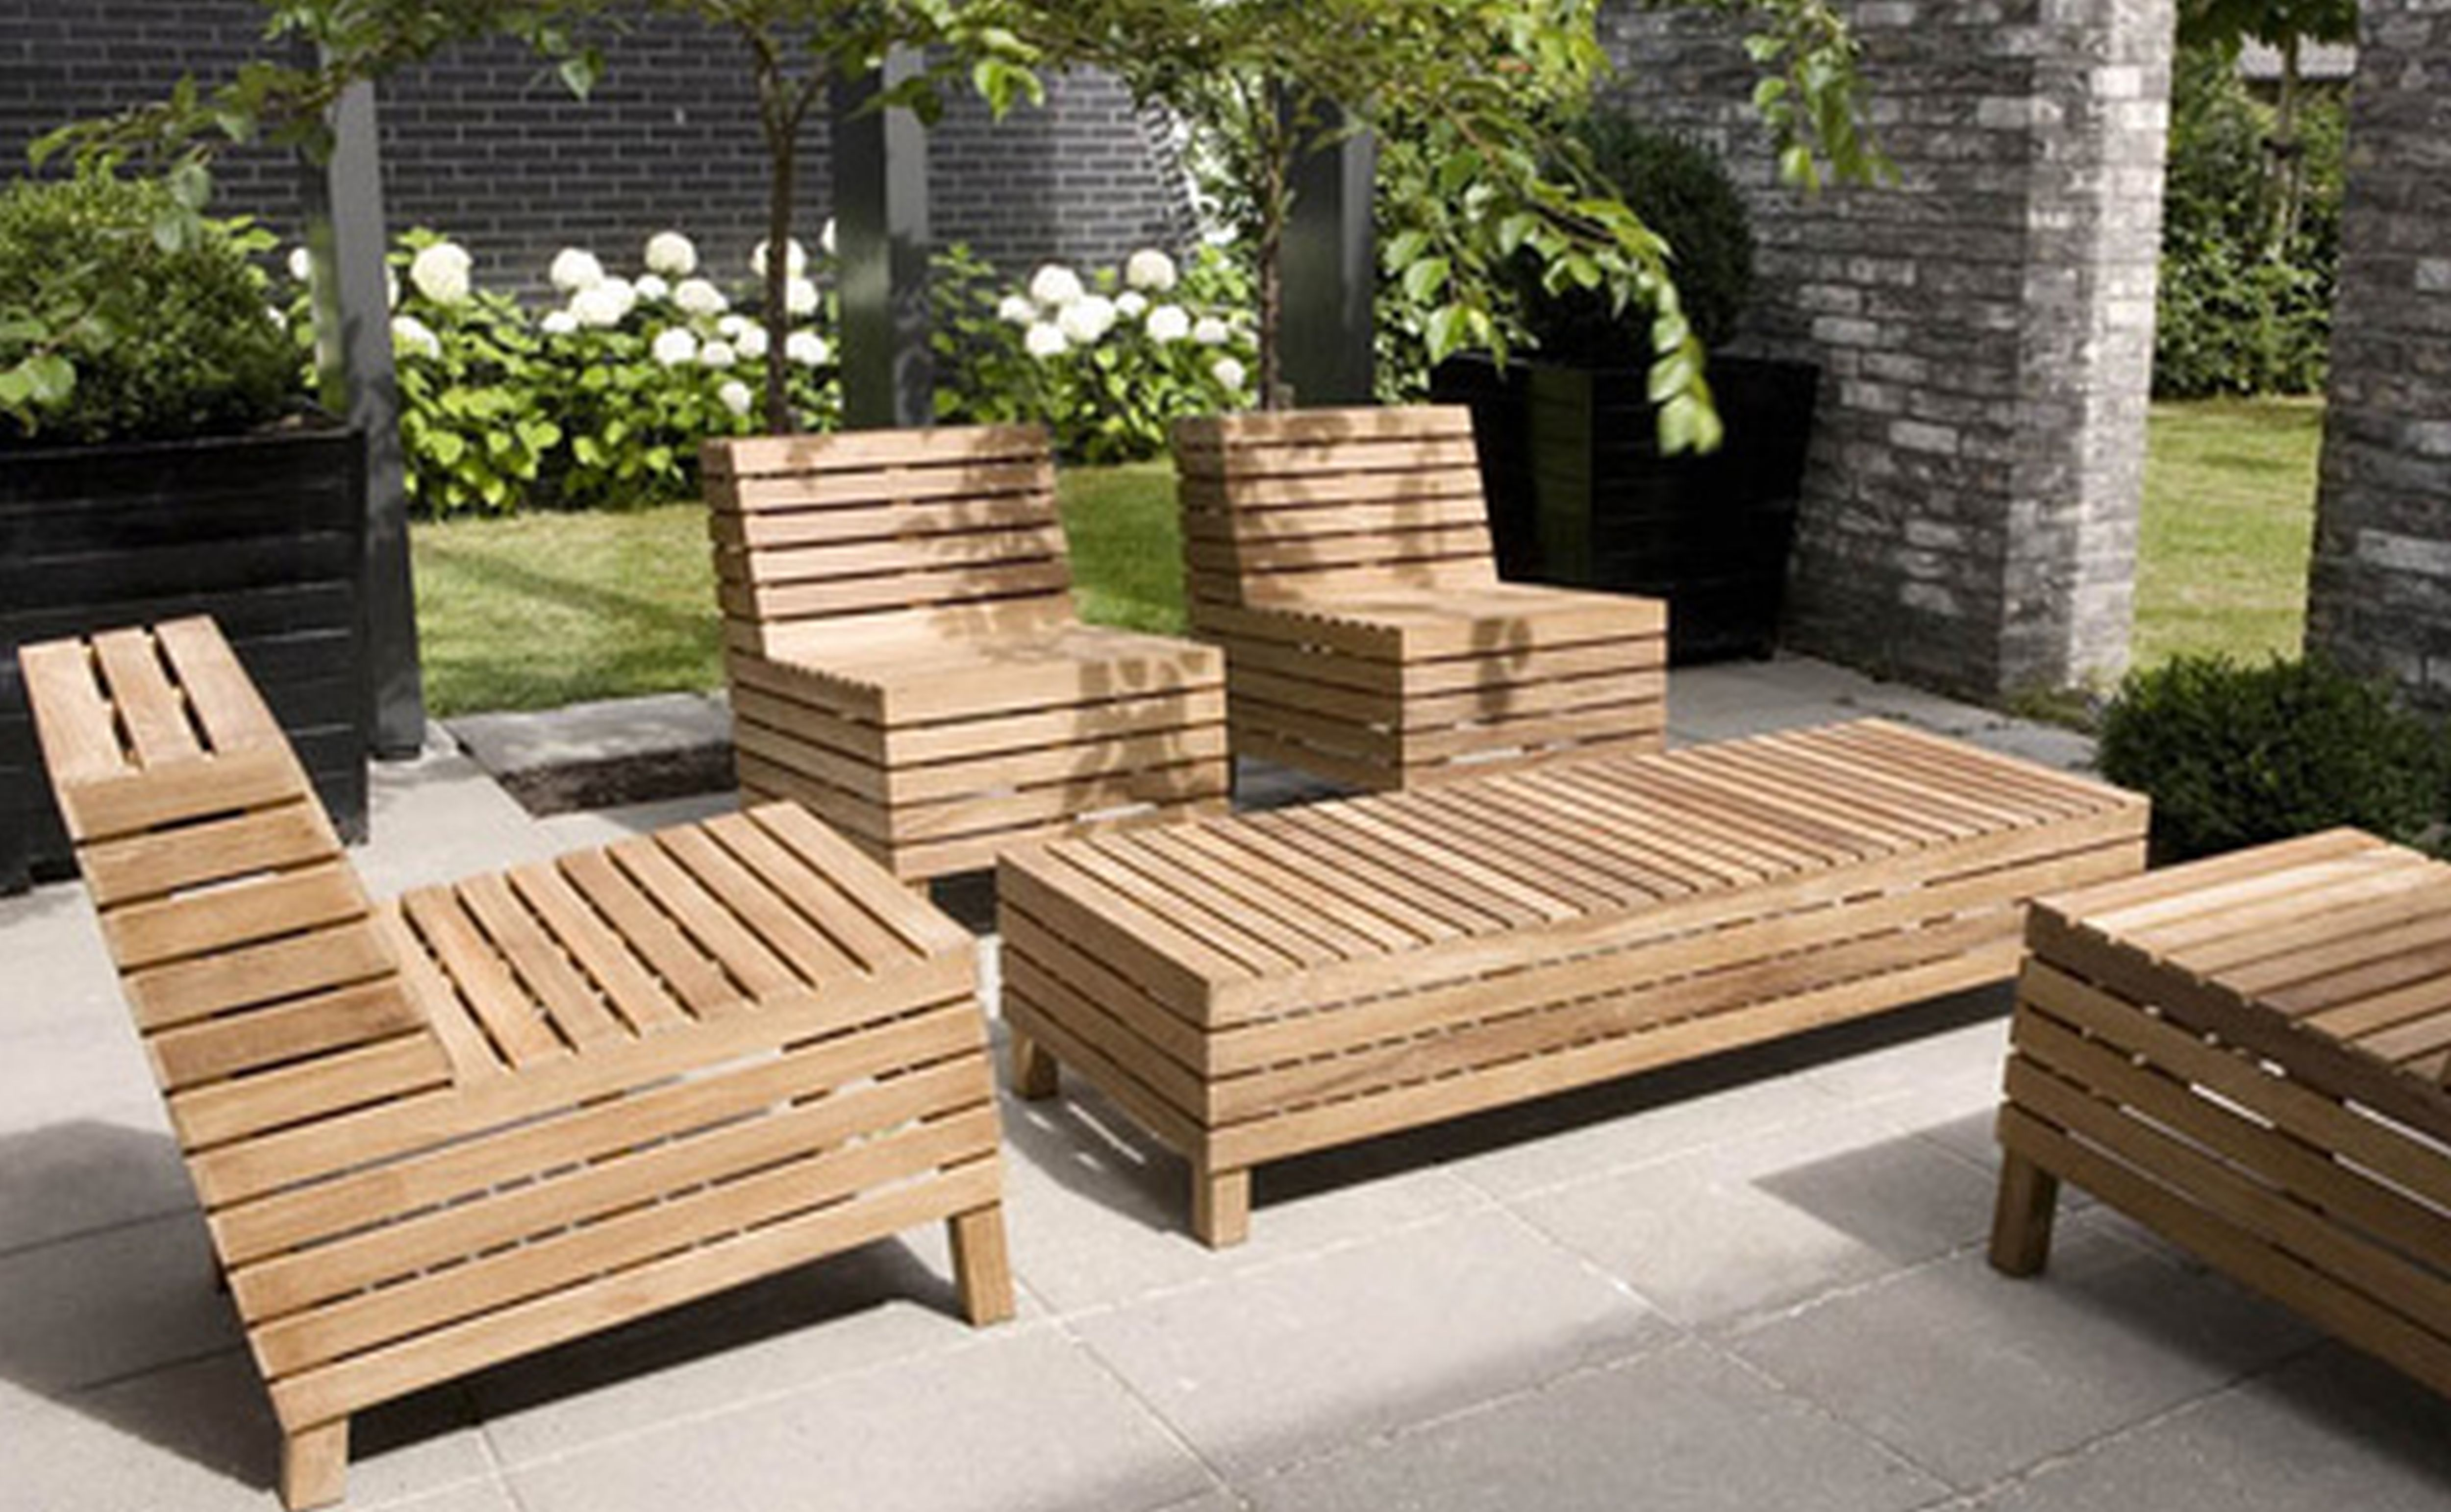 30 Rustic Outdoor Design For Your Home - The WoW Style on Rustic Backyard Ideas id=53780